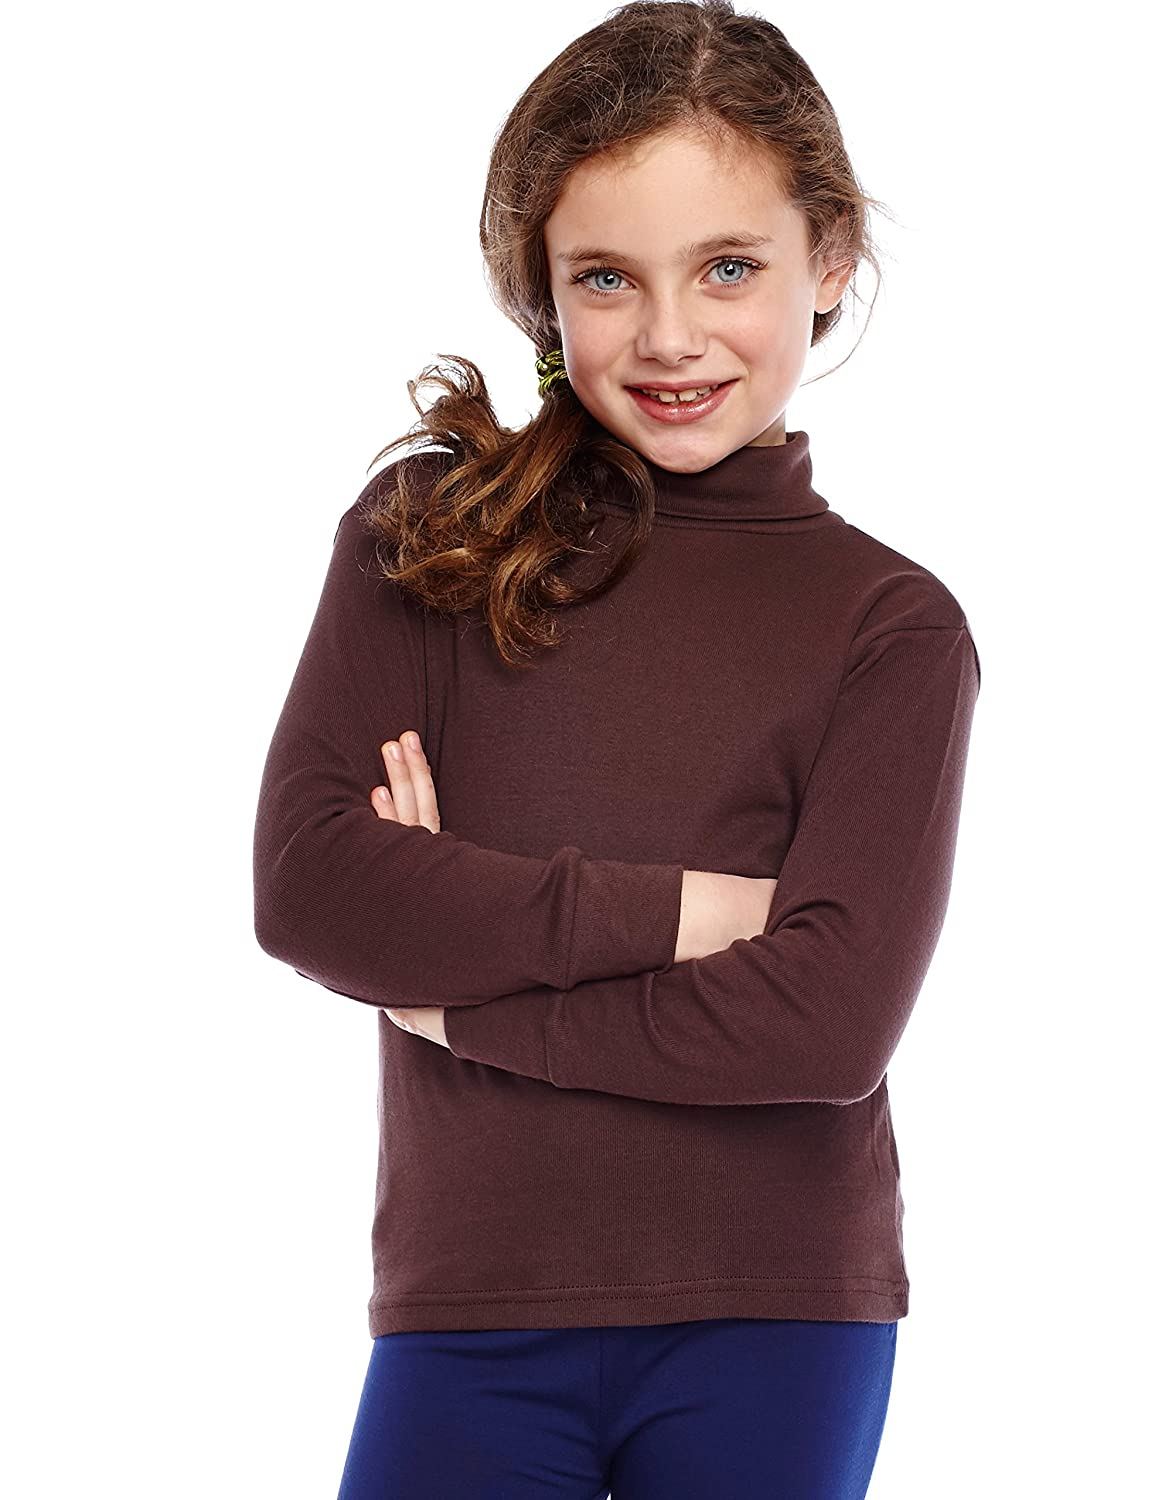 Amazon.com: Leveret Girls Boys & Toddler Solid Turtleneck 100% Cotton Kids  Shirt (2 Toddler-14 Years) Variety of Colors: Clothing